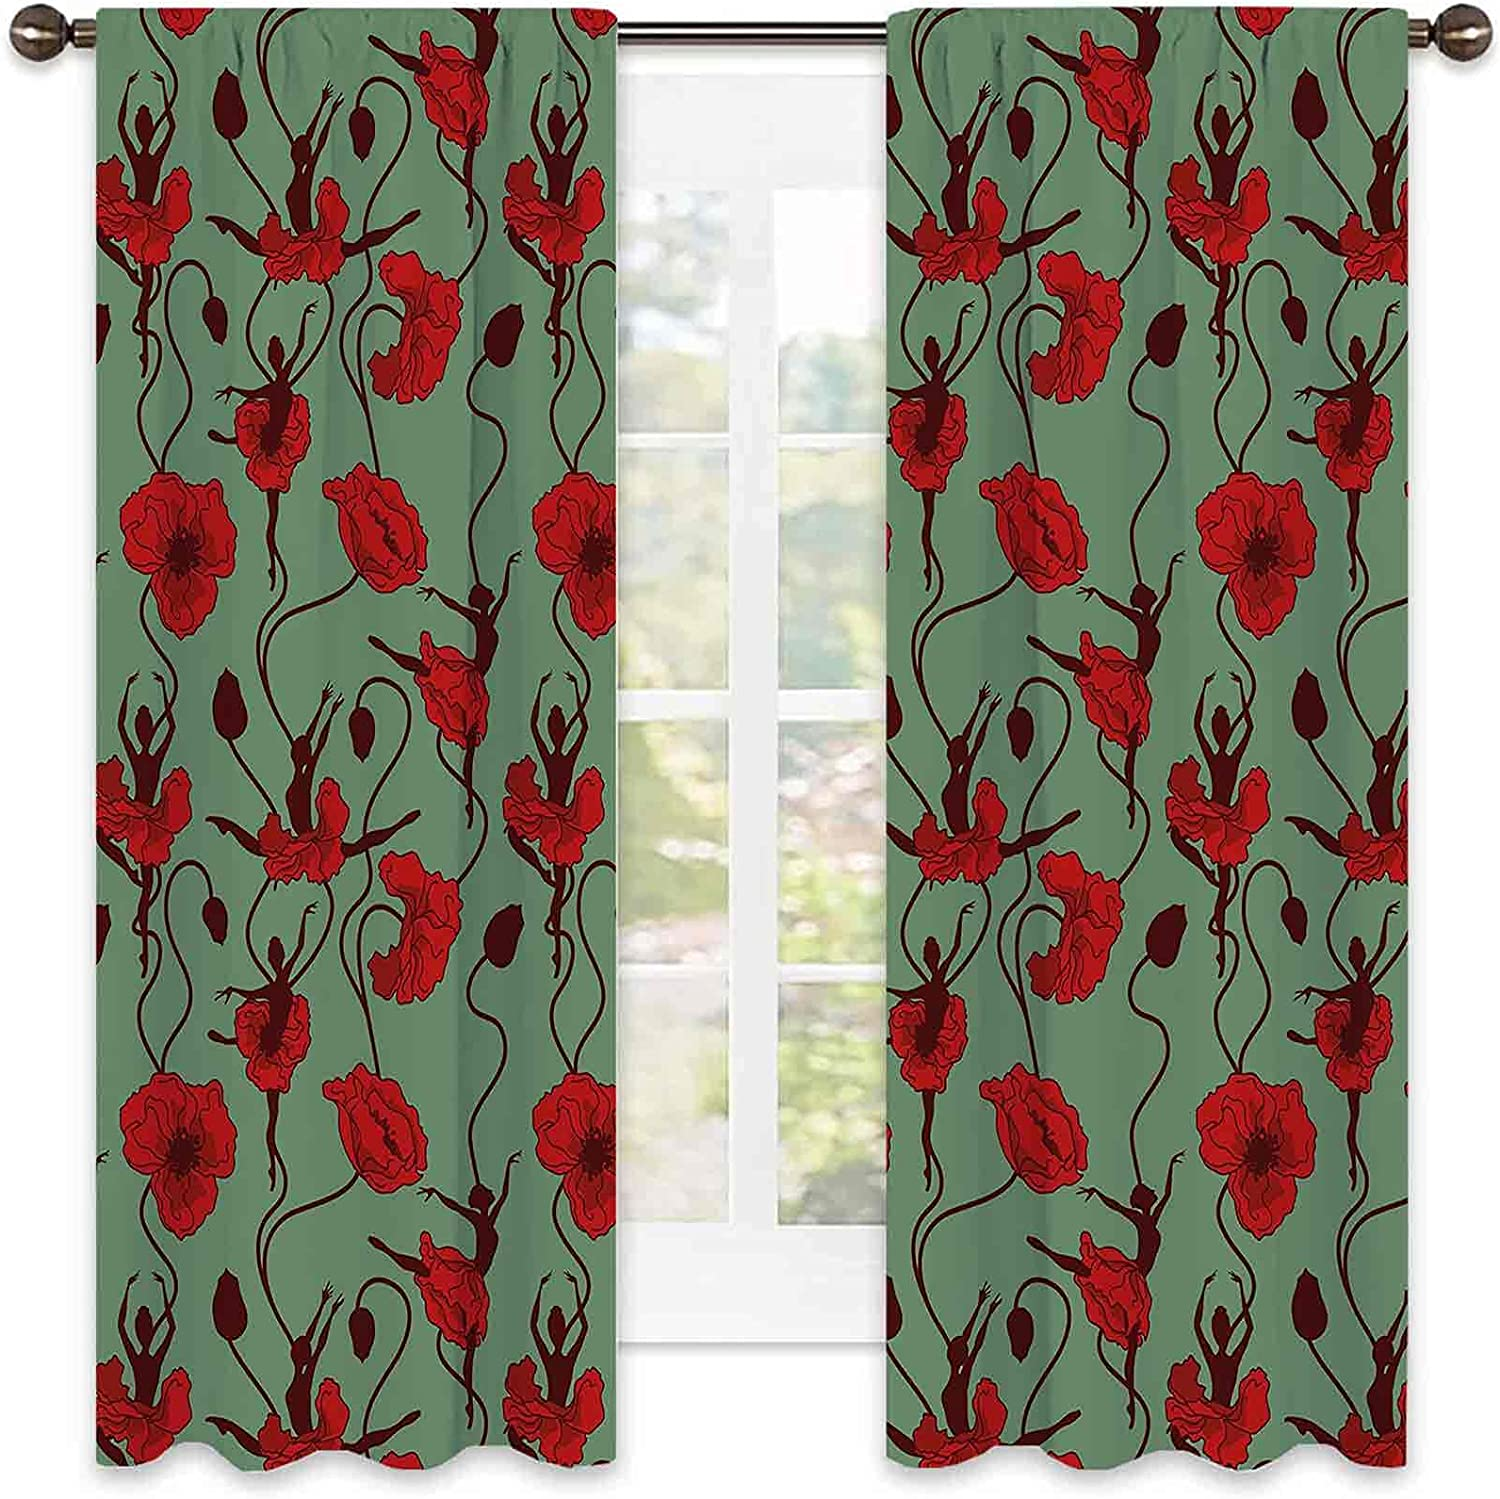 Poppy Heat Insulation Curtain with Max 49% OFF Charlotte Mall Arrangement Floral Abstract